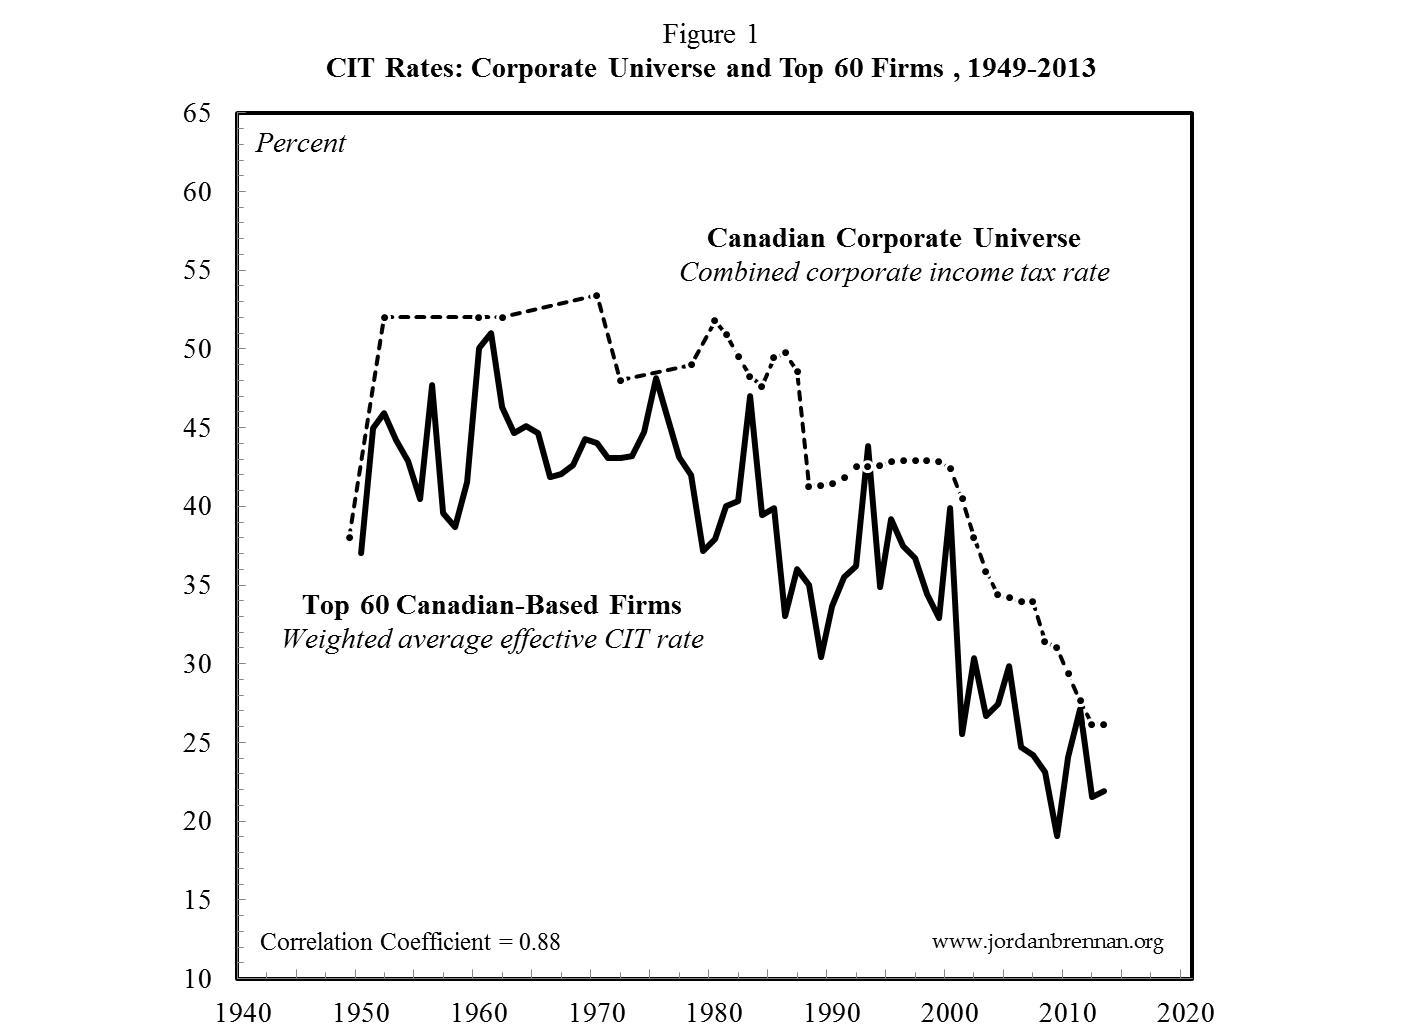 CAN CIT Rates - Top 60 and Corporate Universe